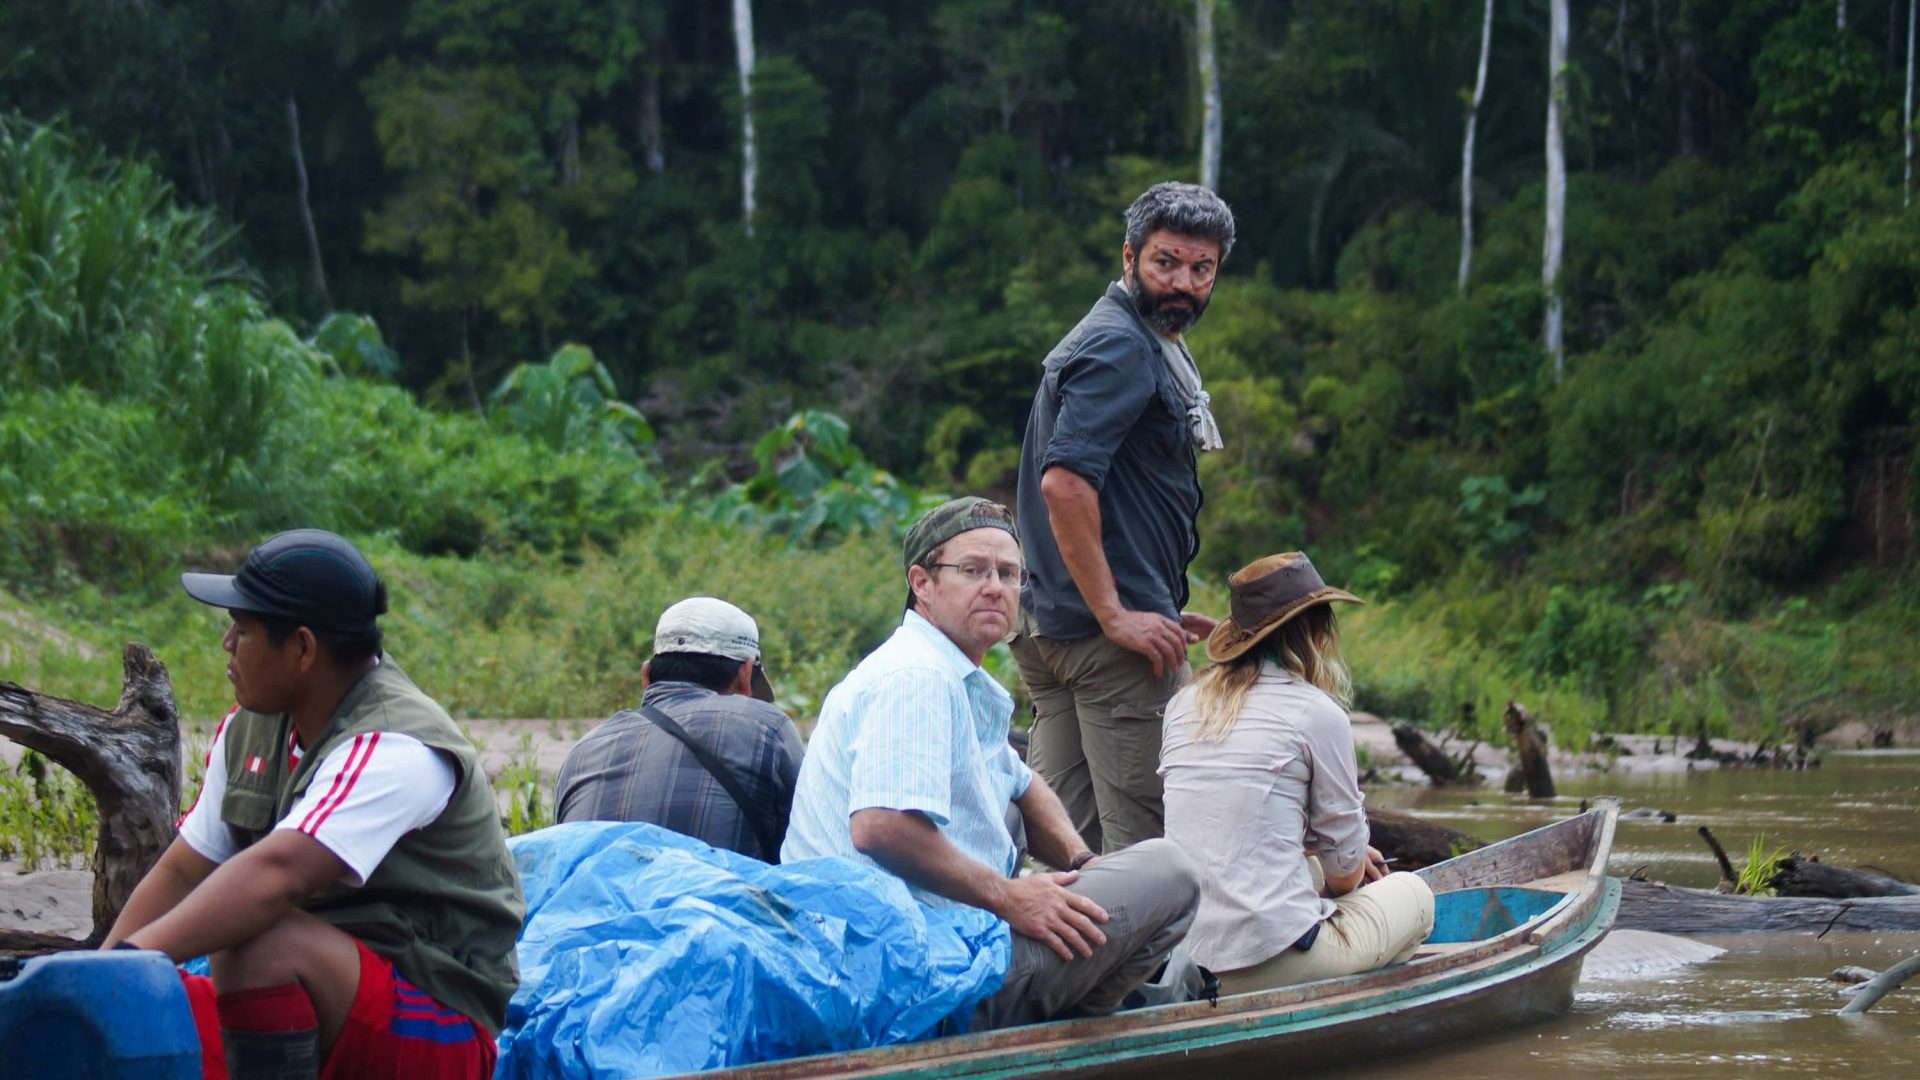 Reza and Pip in the Yurua and Alto Purus region in the Peruvian Amazon, home to some of the world's last isolated tribes.